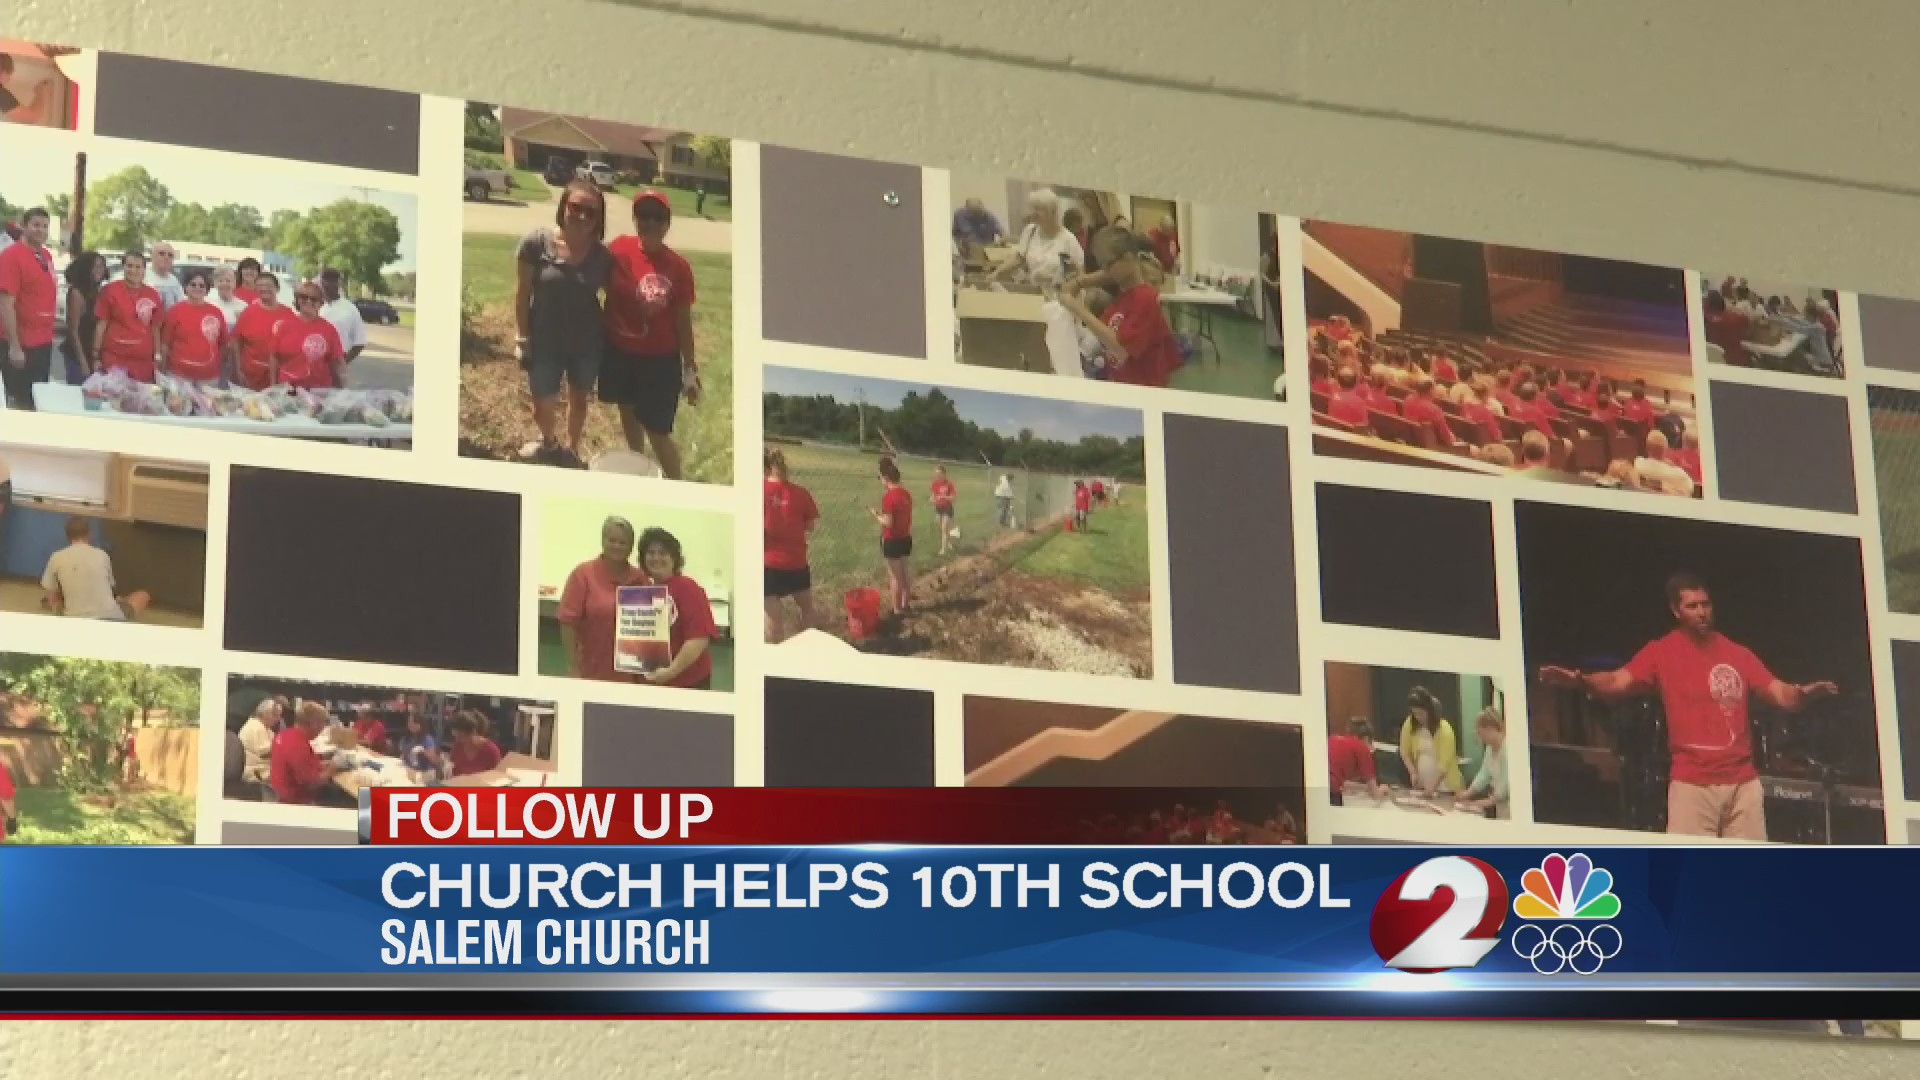 Salem Church helps tenth school